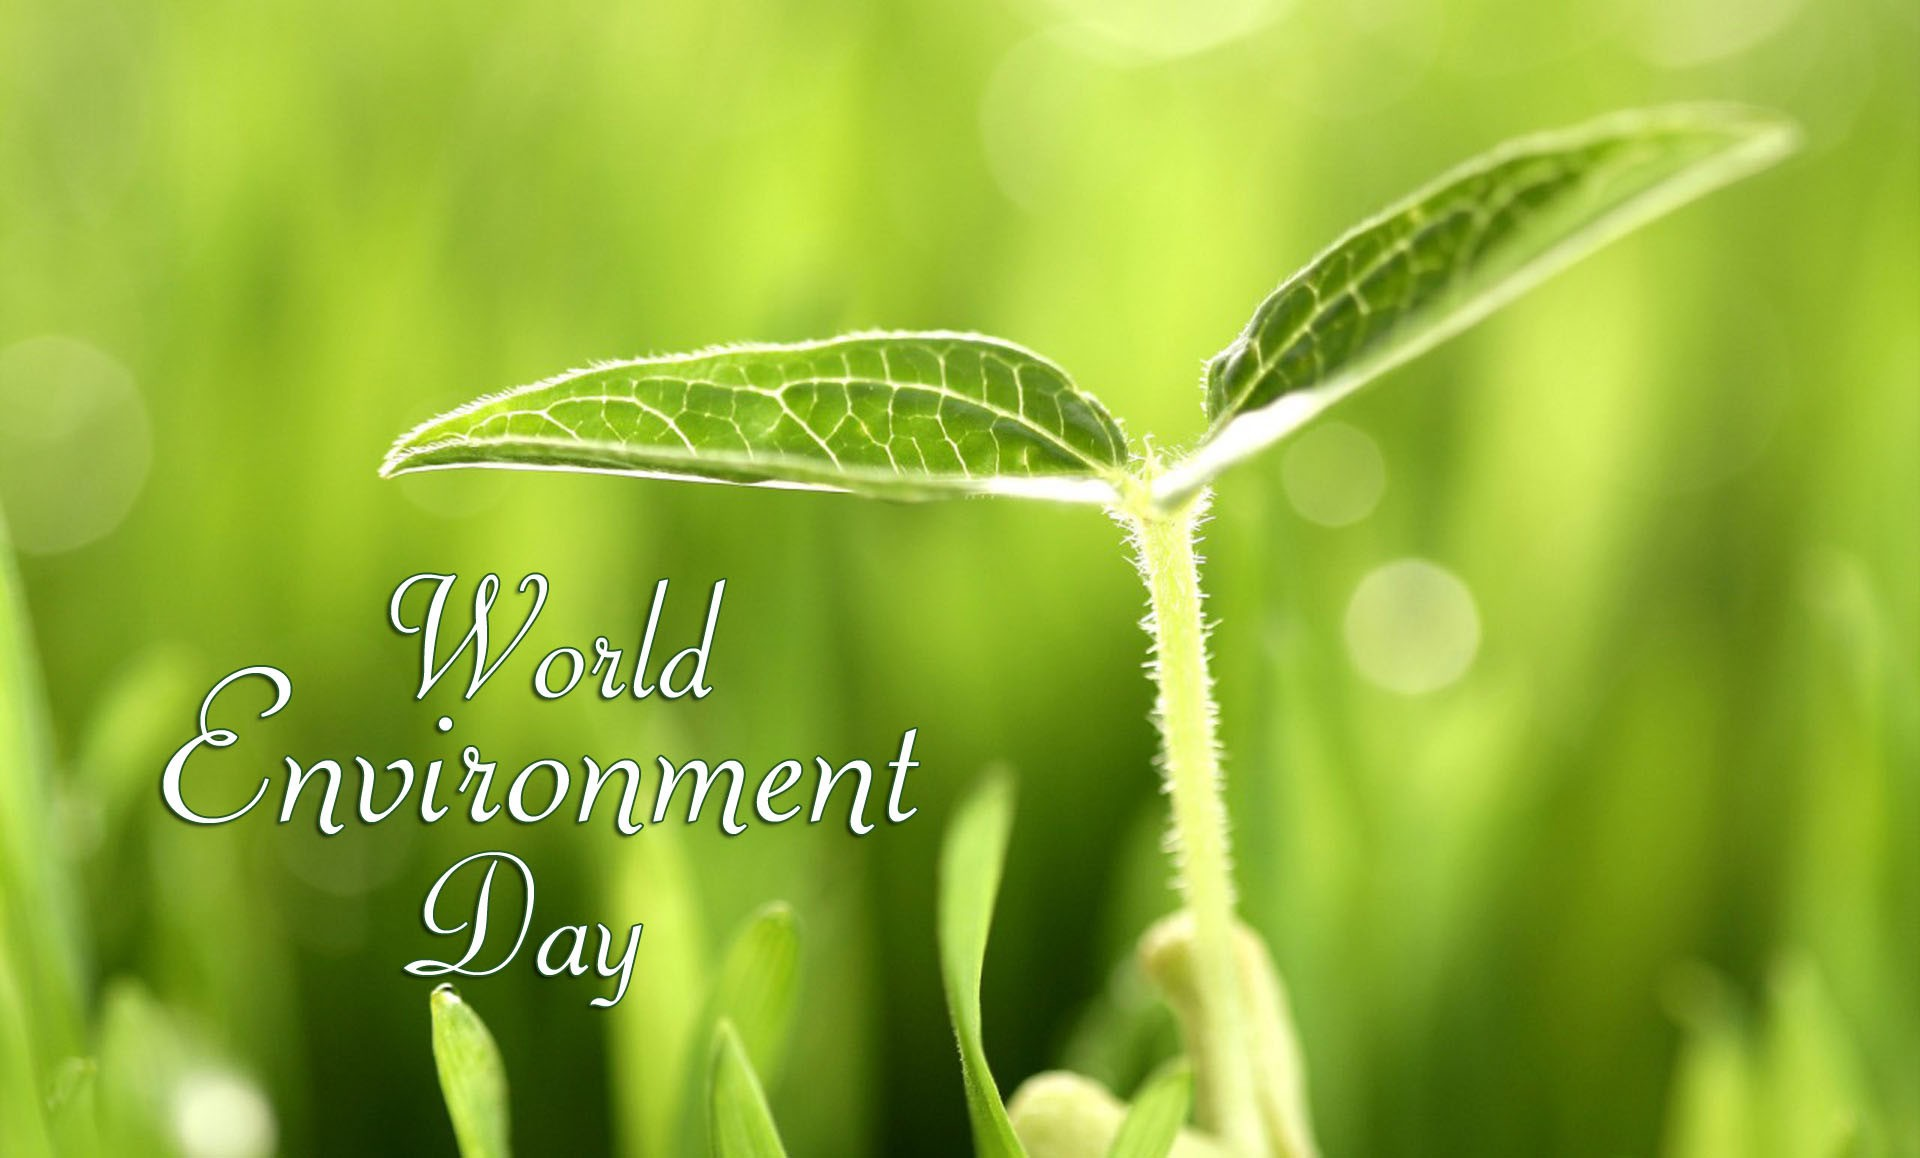 World Environment Day Images Wallpapers Banners Amp Photos